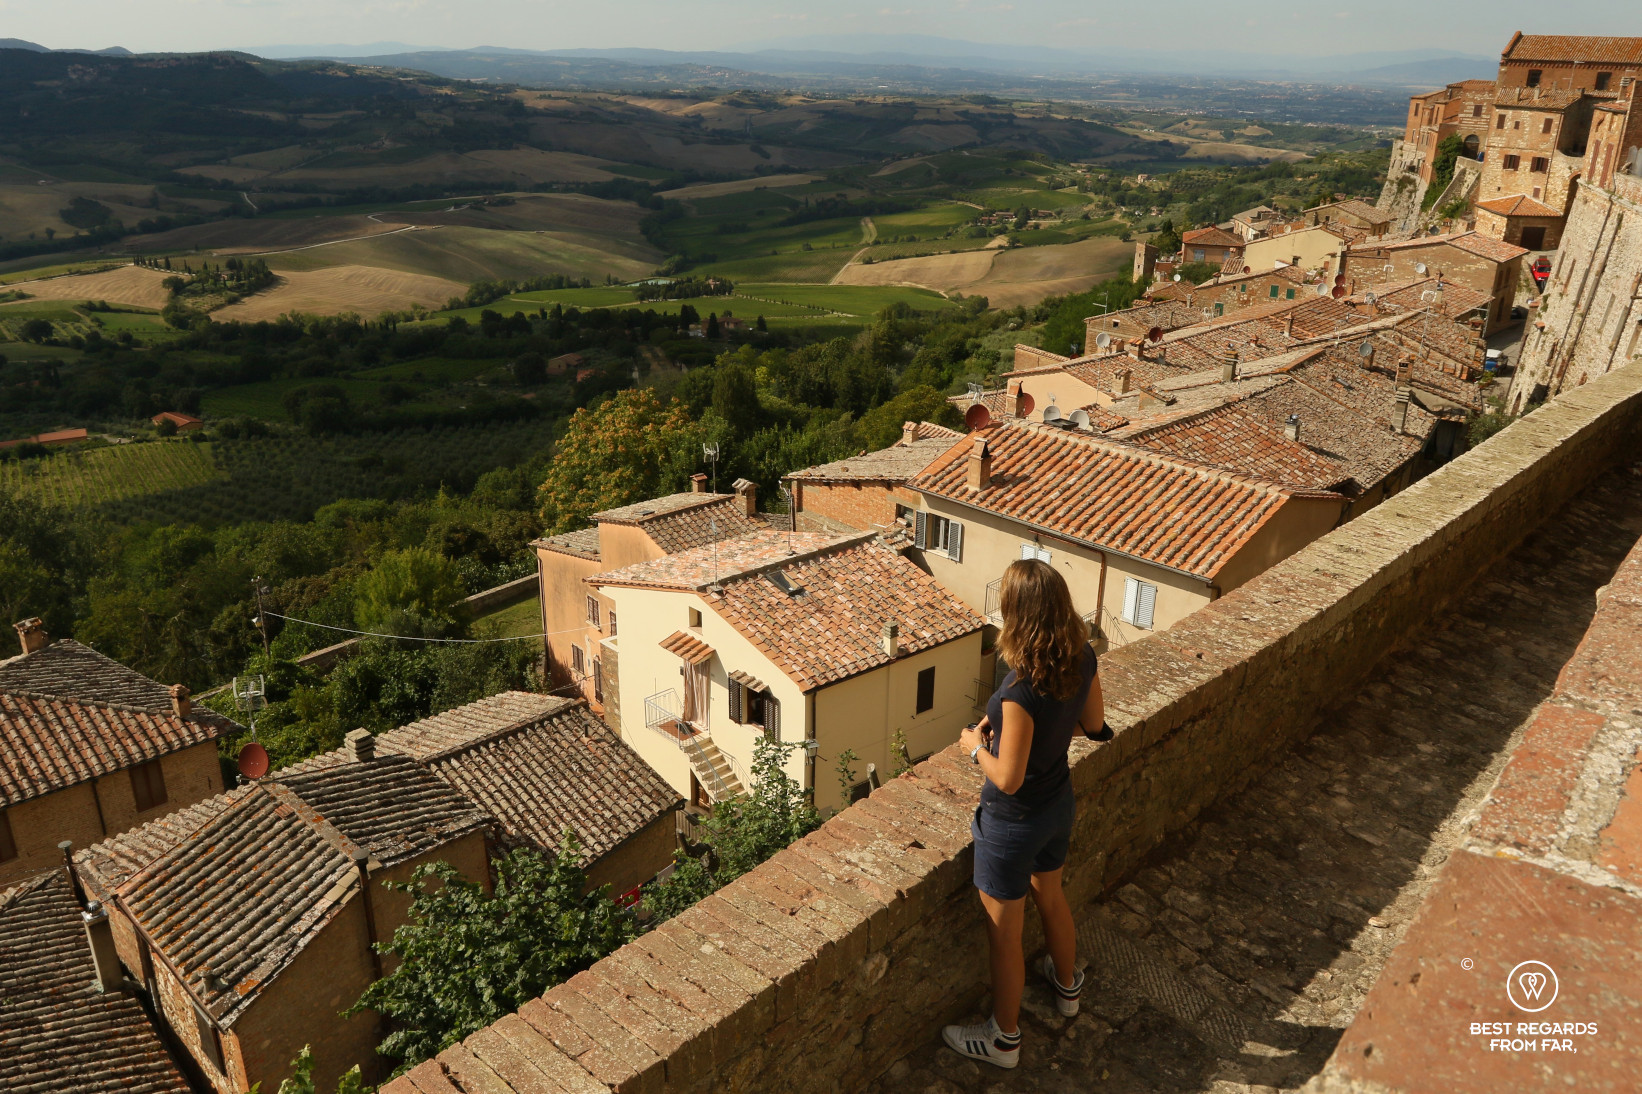 Woman in shorts taking in the the rooftops and views on the vineyards